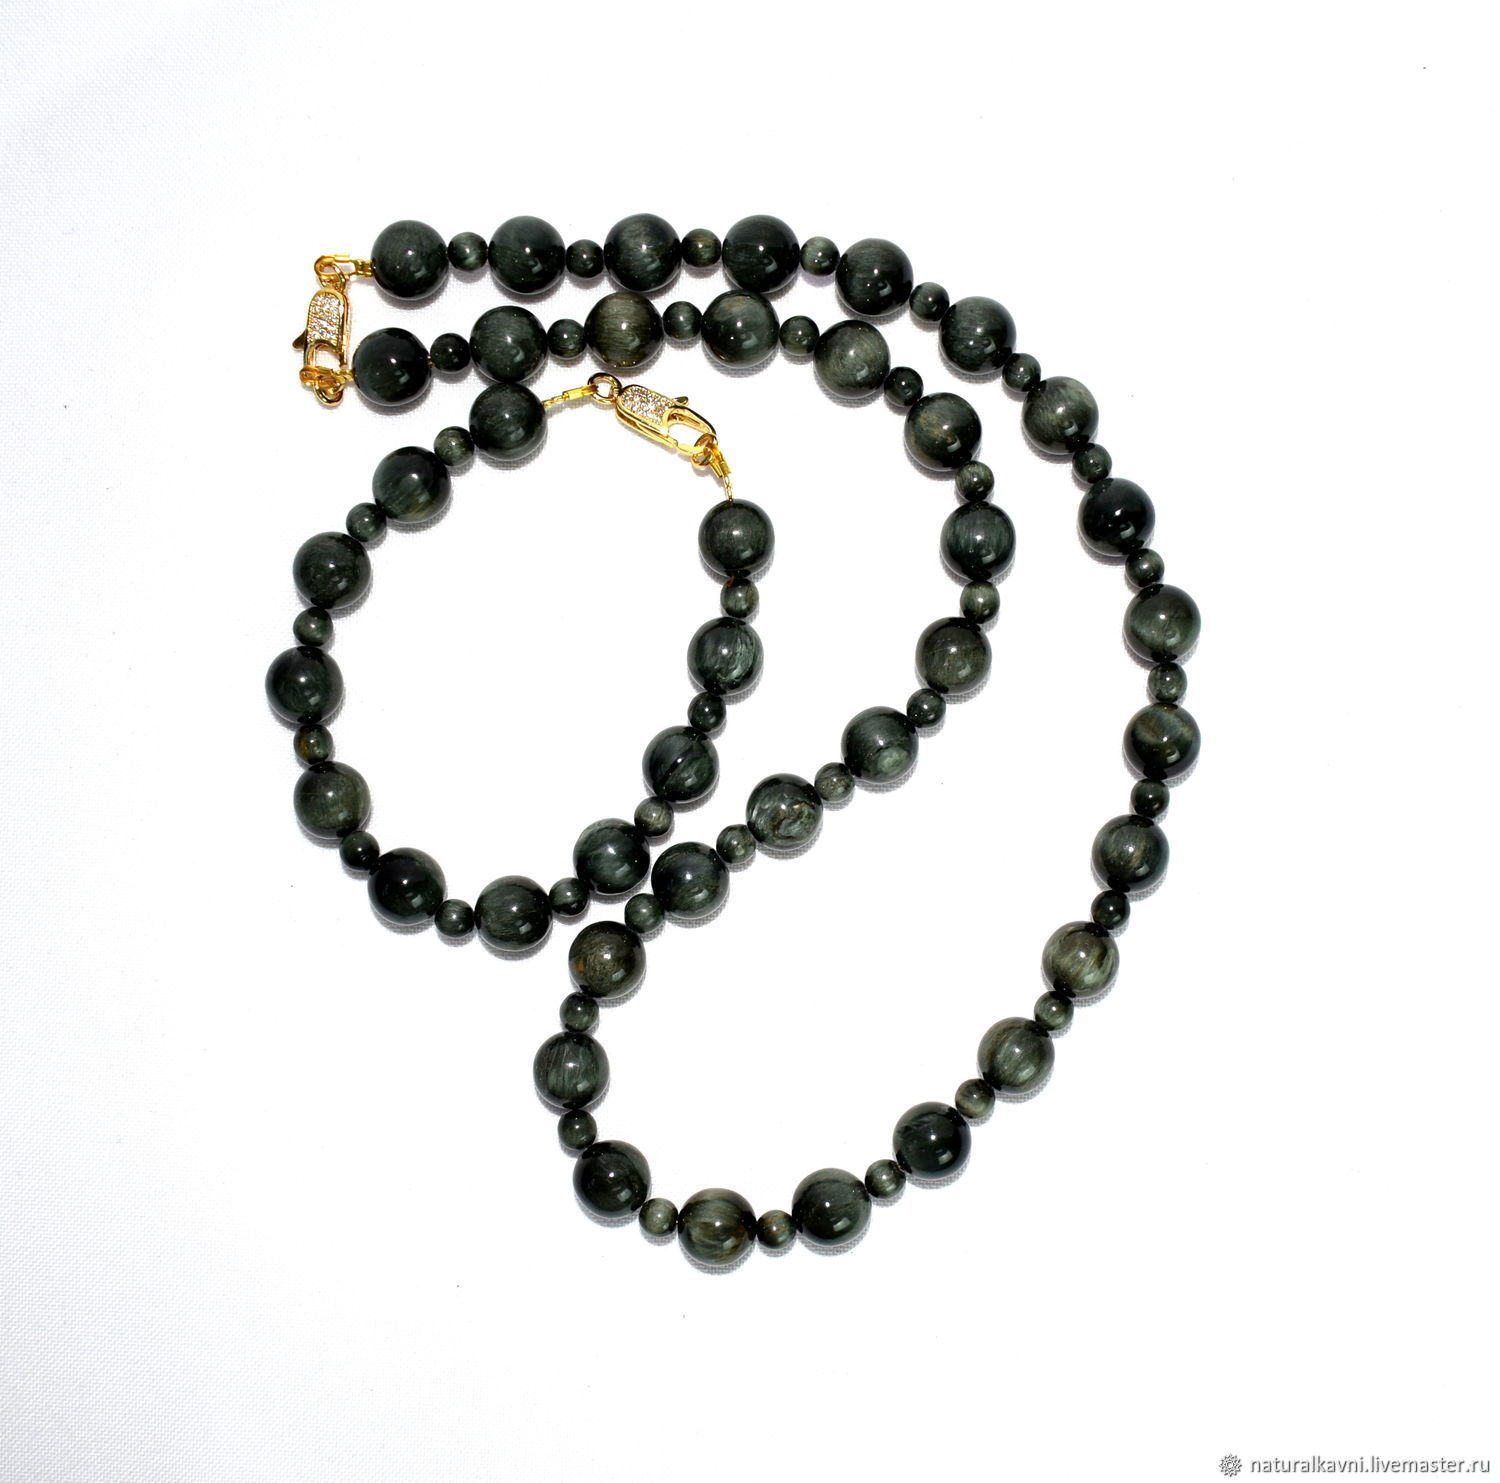 Chrysoberyl necklace and bracelet, Jewelry Sets, Moscow,  Фото №1